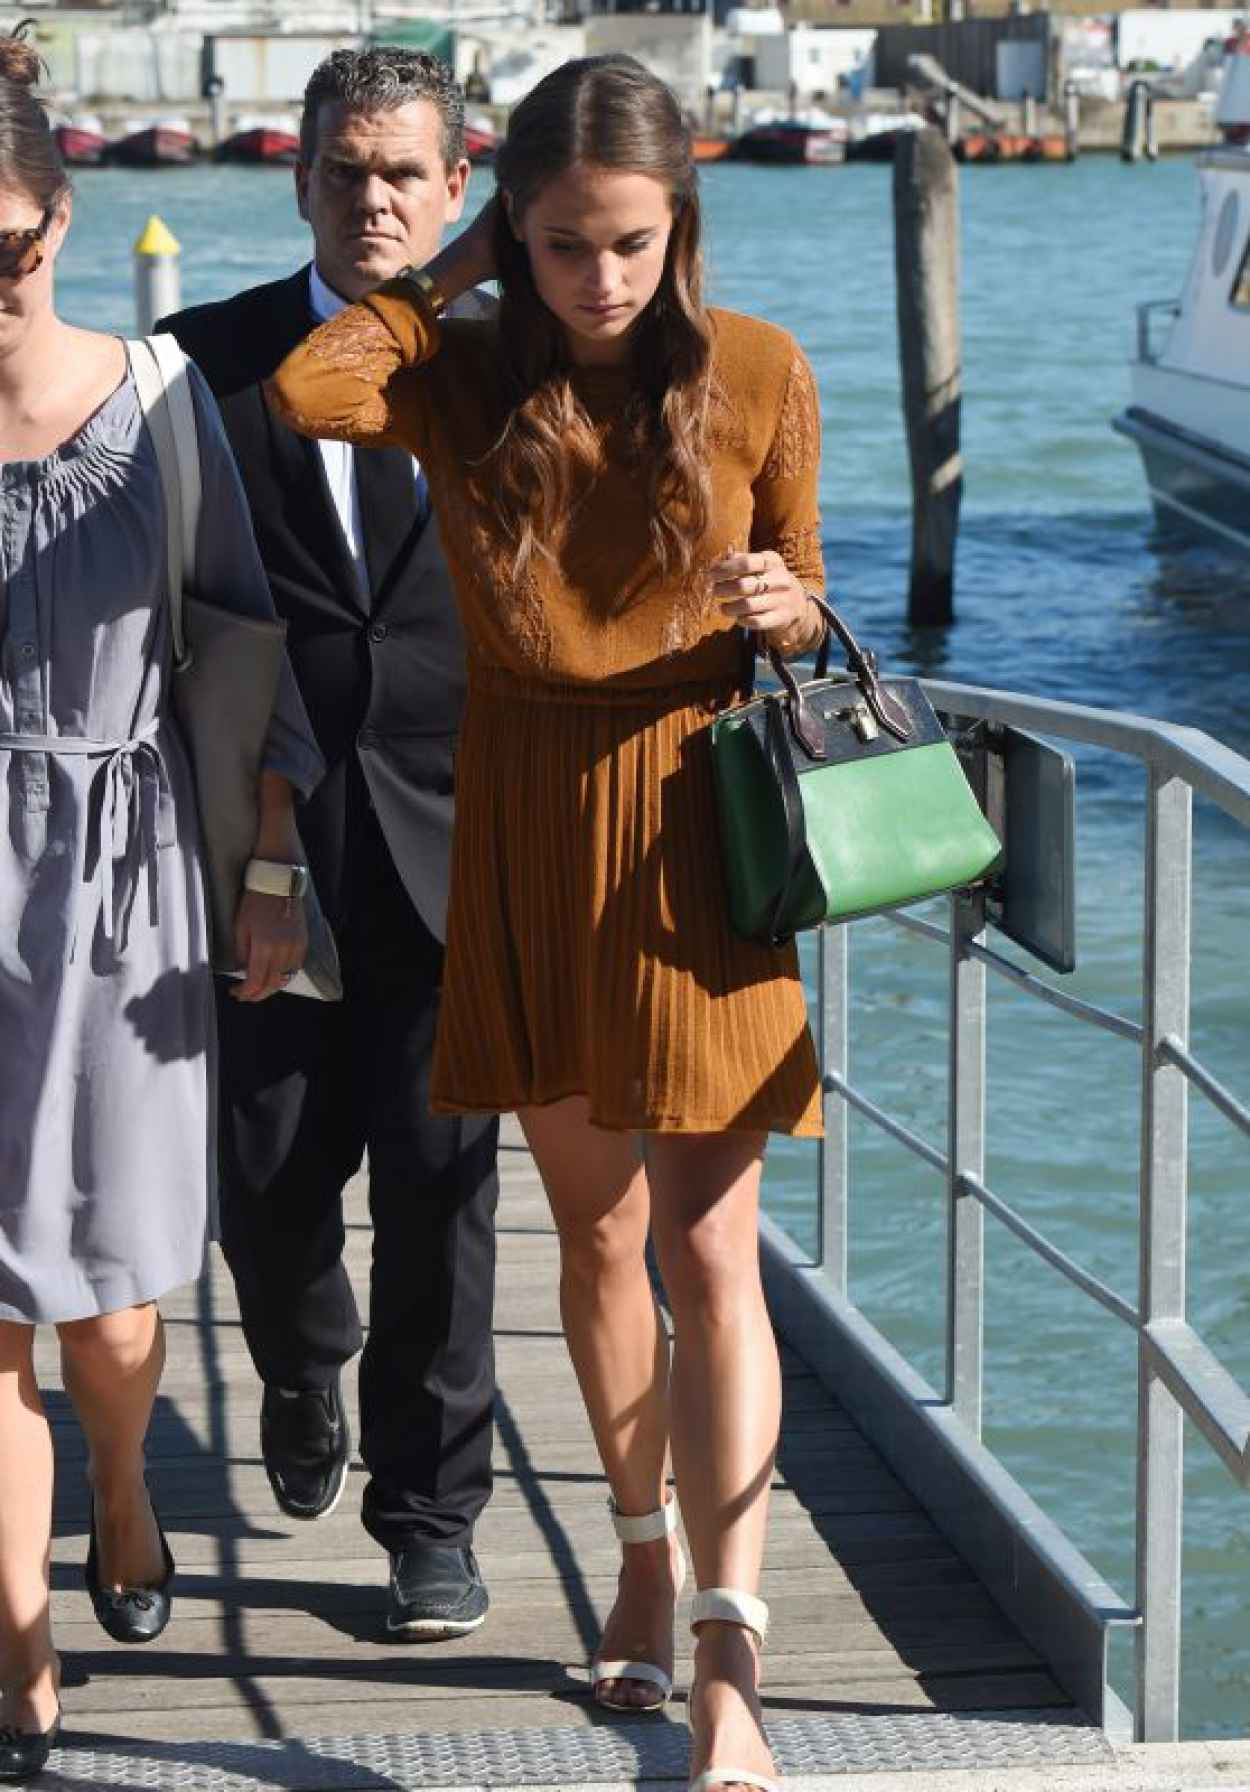 Alicia Vikander Deboarding the Yacht in Venice, Italy, September 2015-1